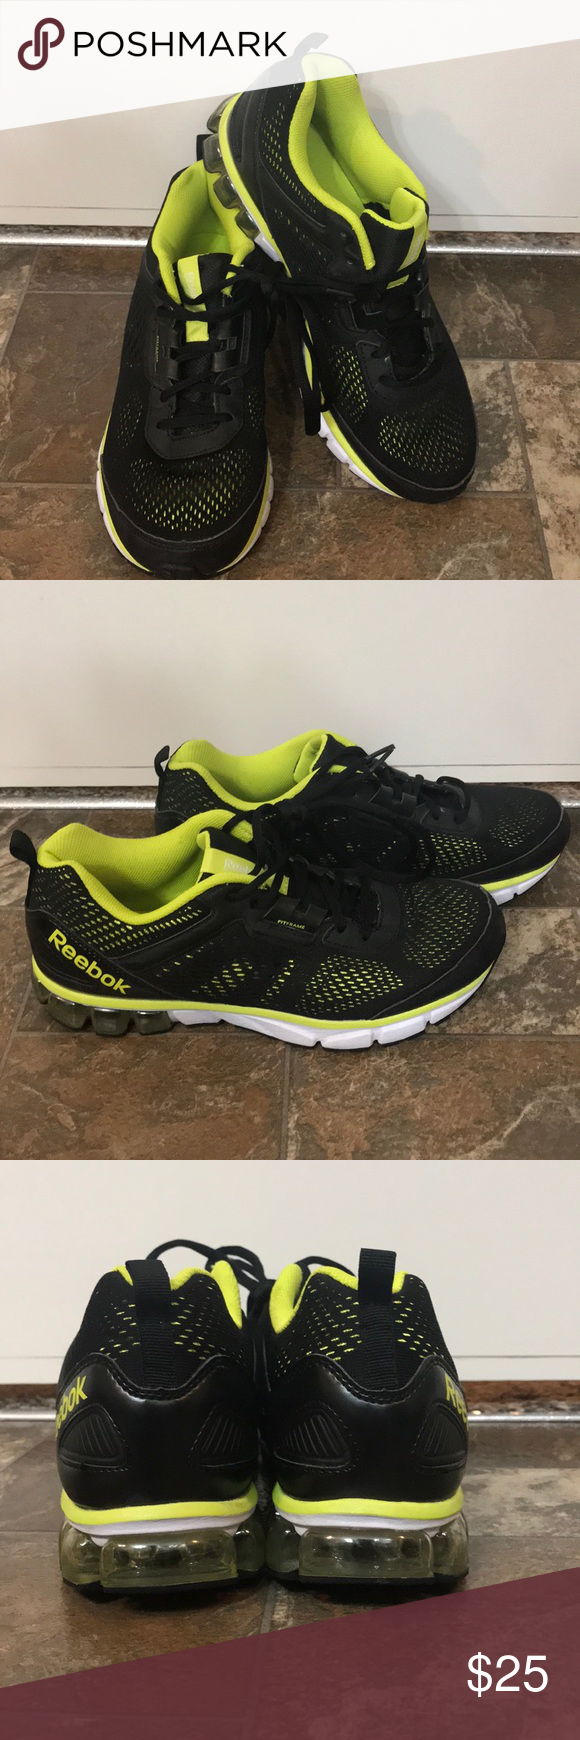 702ae3216056 Reebok running shoe Black and neon green mens Reebok running shoe in good  condition! Reebok Shoes Athletic Shoes